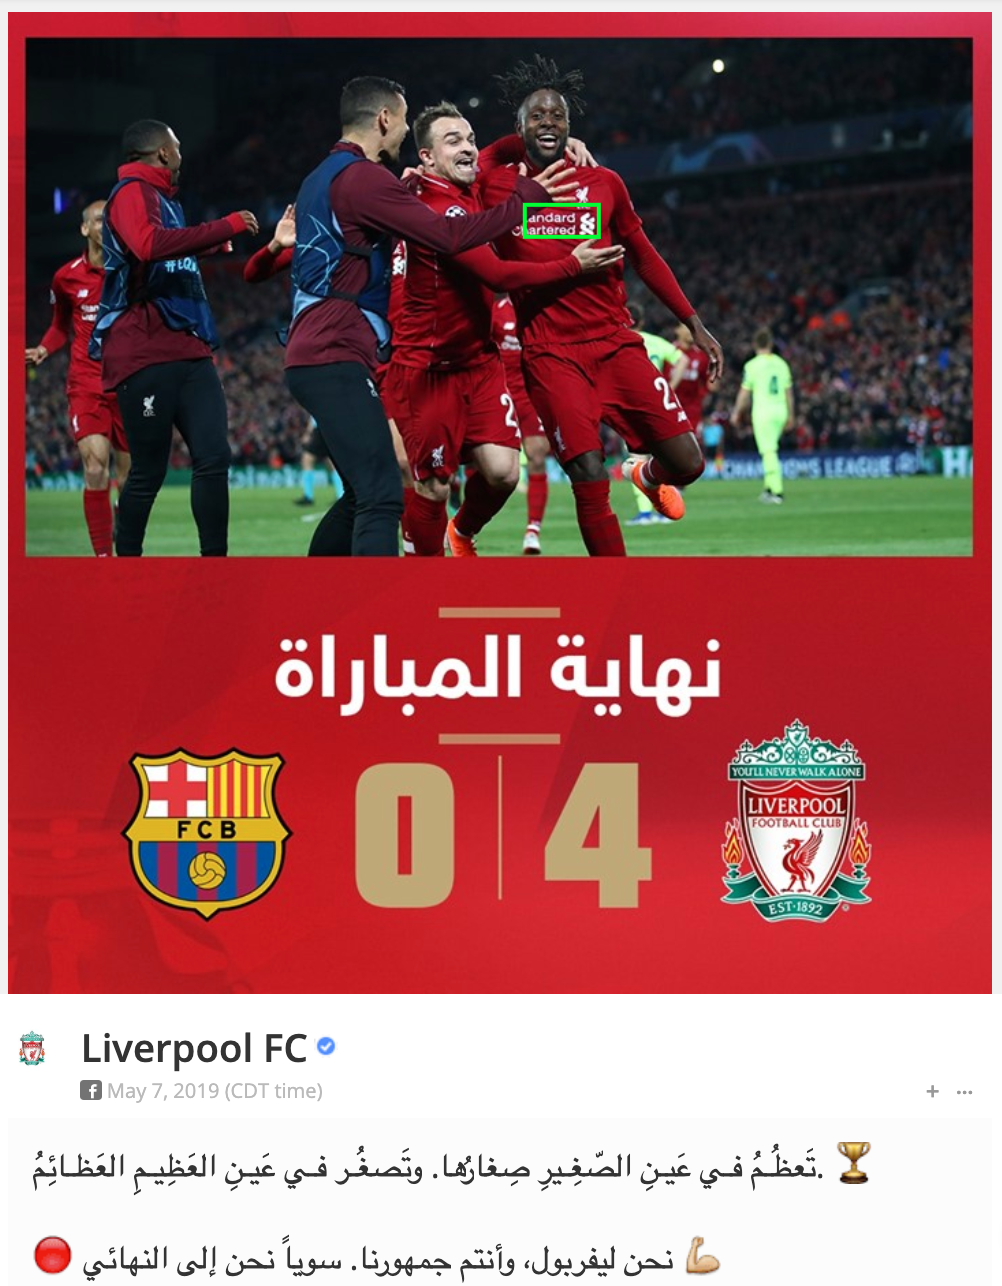 Liverpool FC defeating FC Barcelona CL